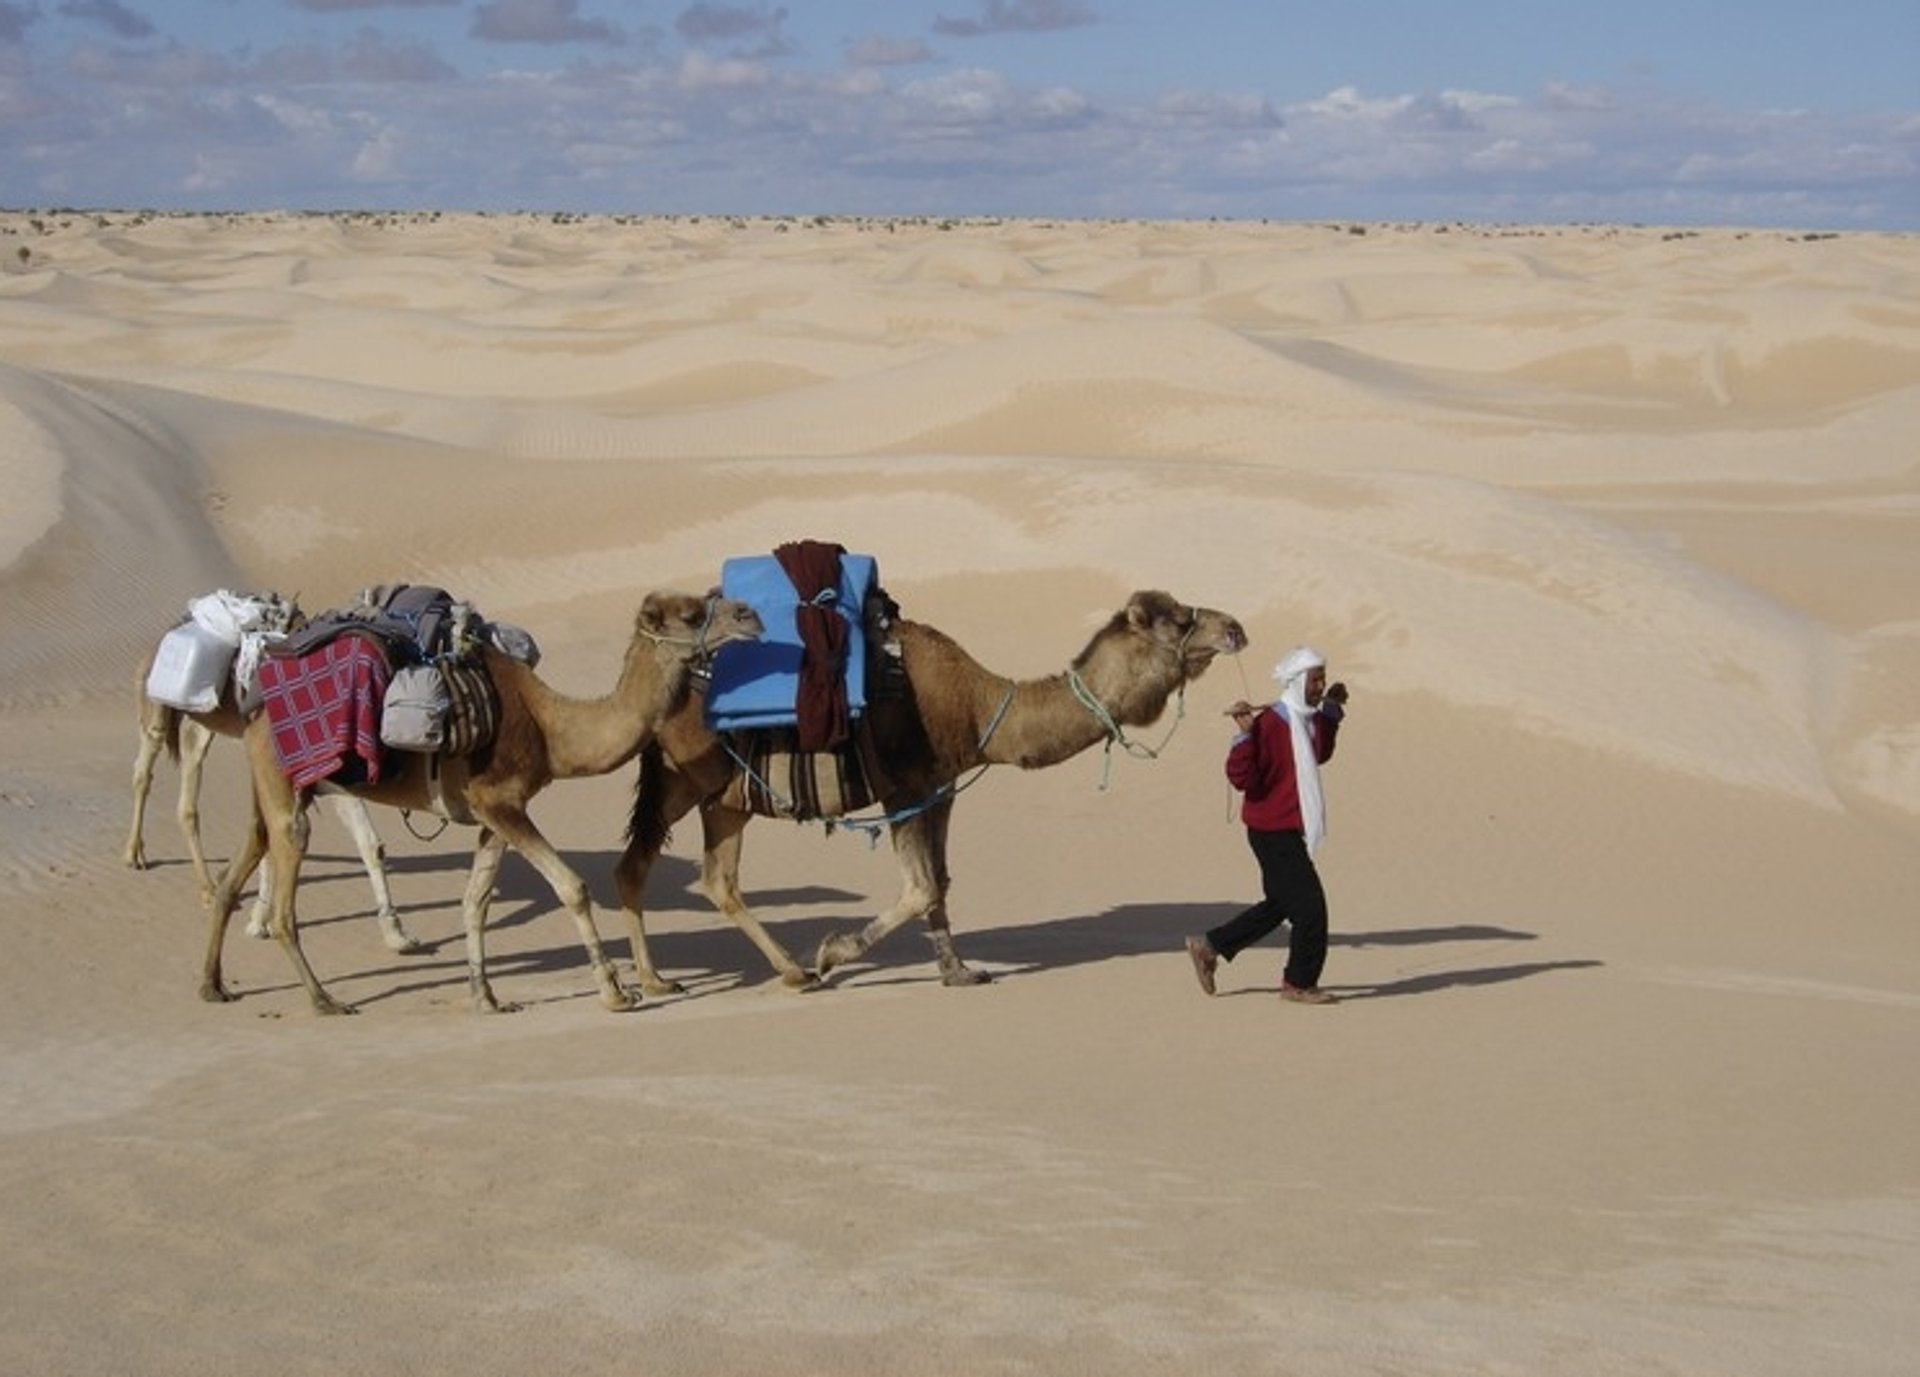 Sahara Camel Trekking  in Tunisia 2020 - Best Time